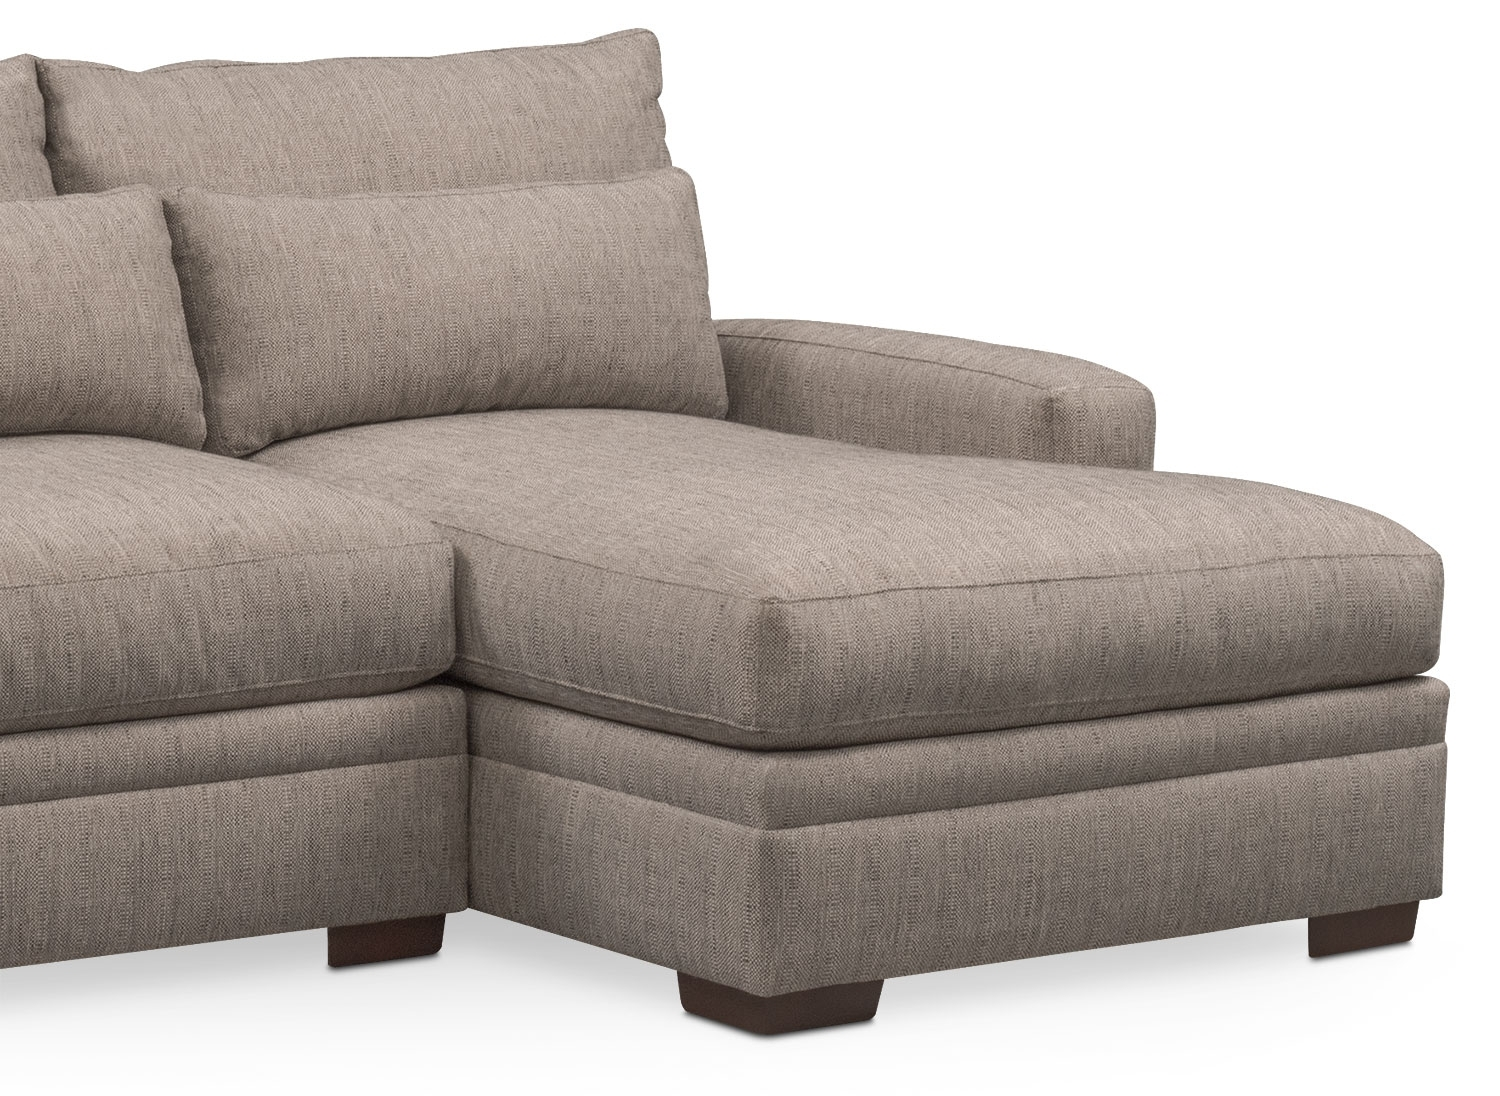 Vcf Sofa Chaise | Baci Living Room With Mcdade Graphite 2 Piece Sectionals With Raf Chaise (Image 24 of 25)